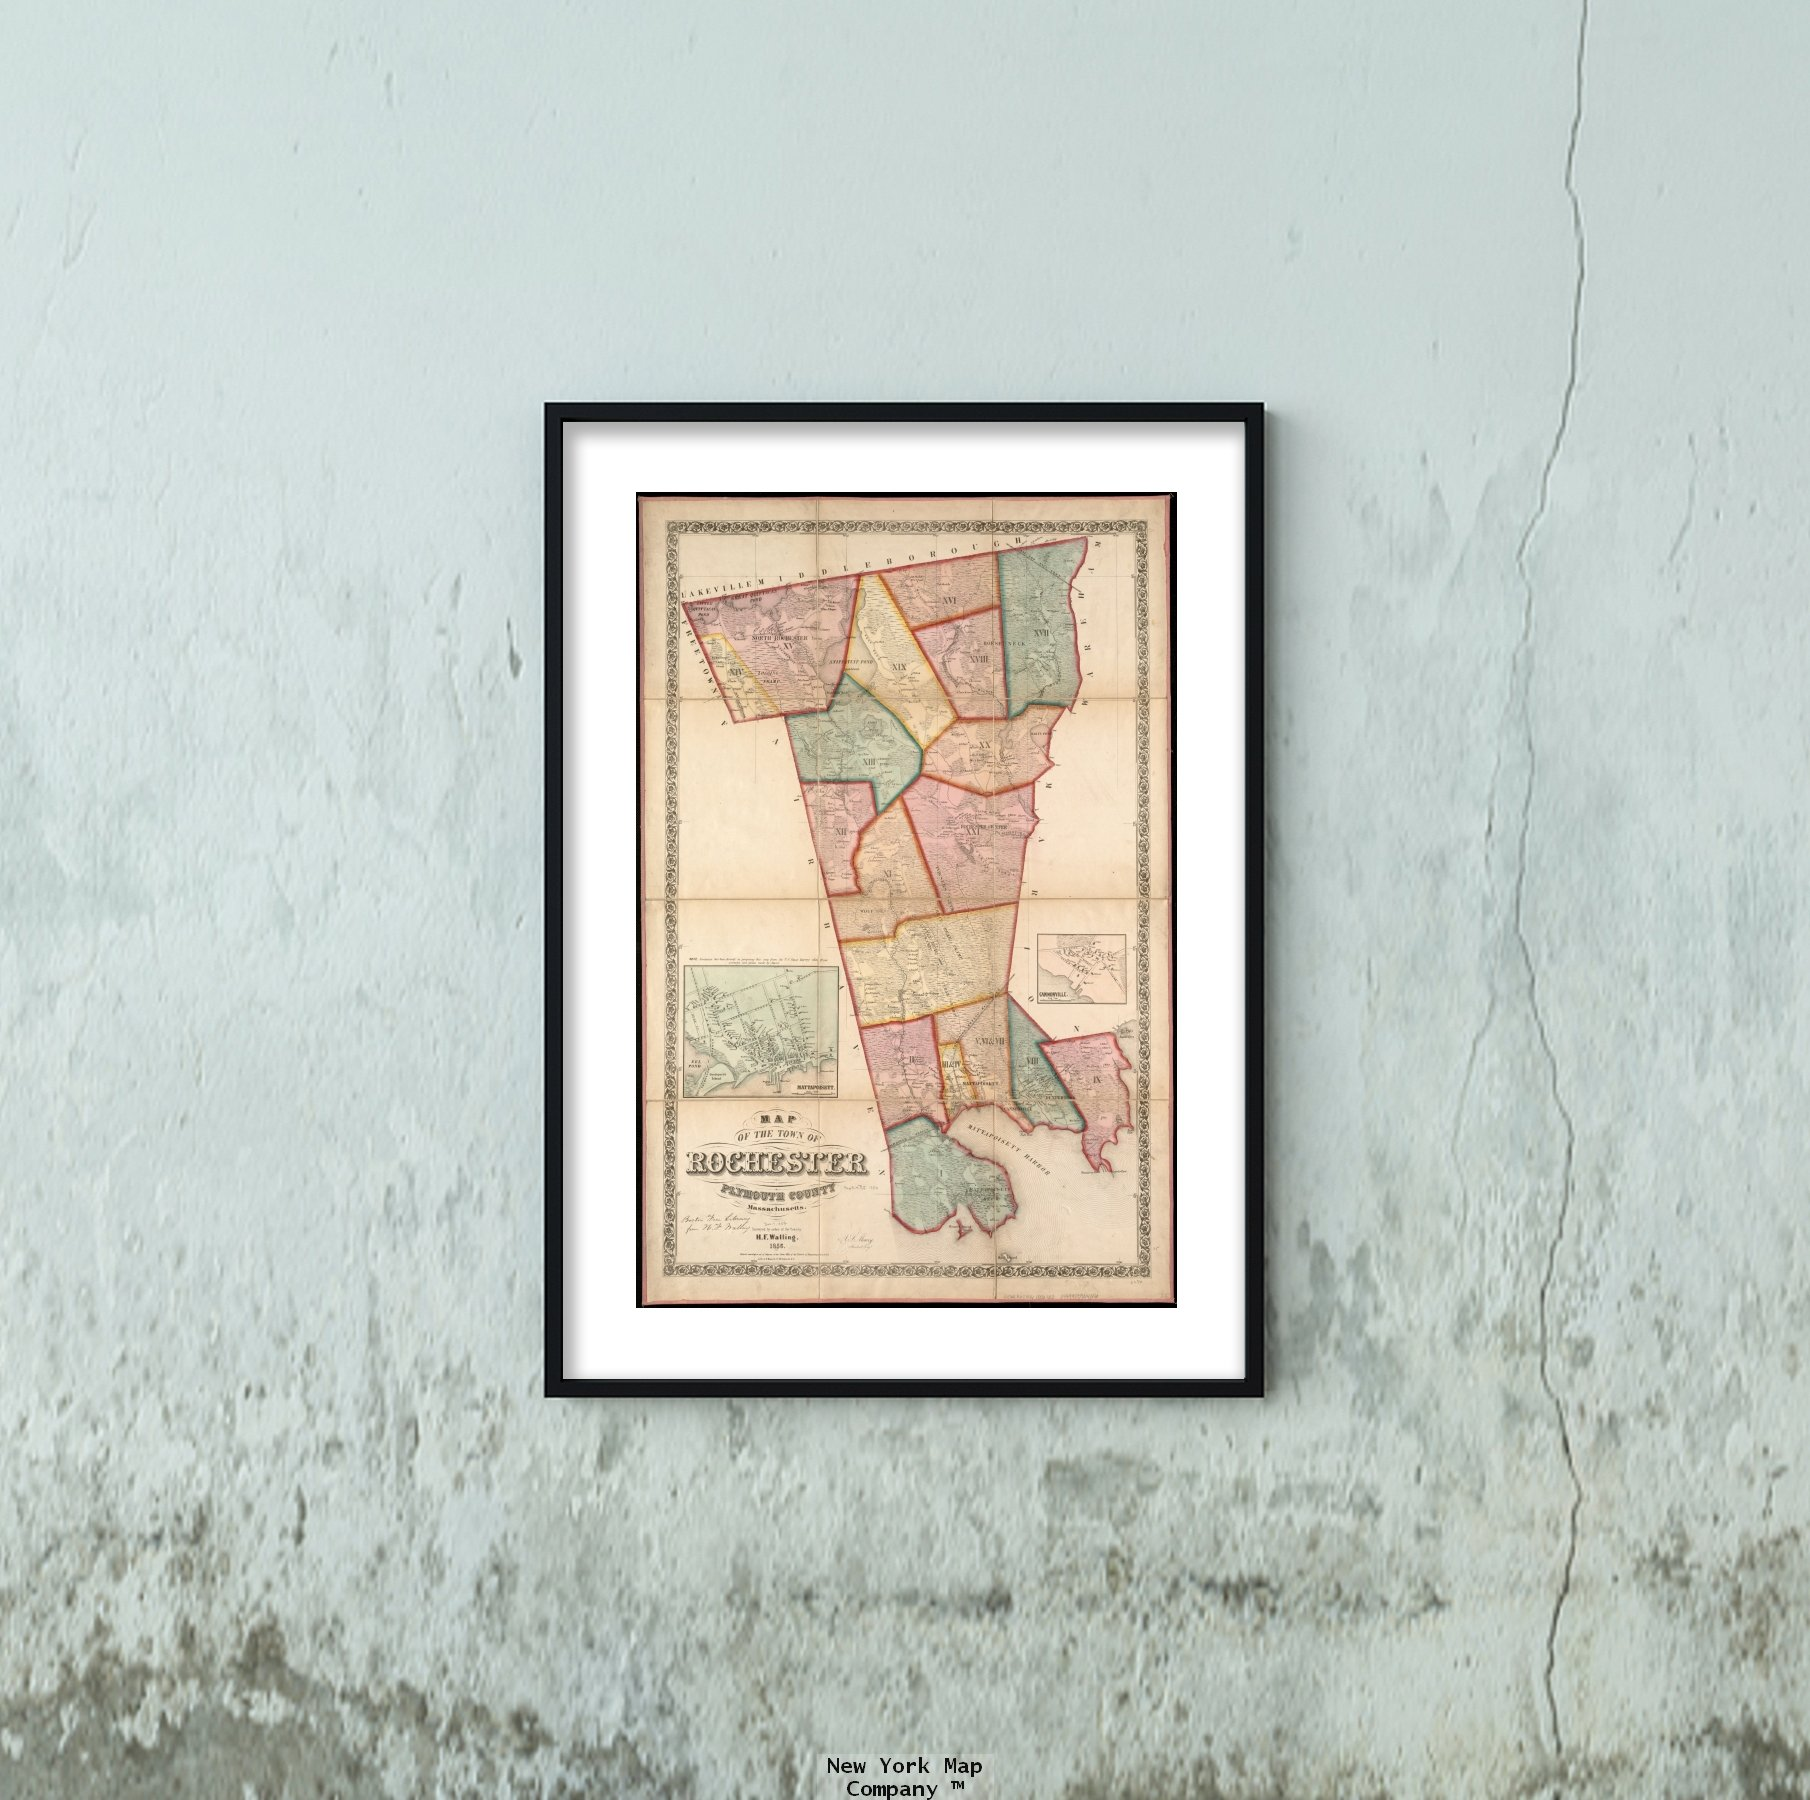 1856 Map|Plymouth|Mattapoisett of The Town of Rochester, Plymouth County, Massachusetts : Survey|Vintage Fine Art Reproduction|Ready to Frame by New York Map Company LLC